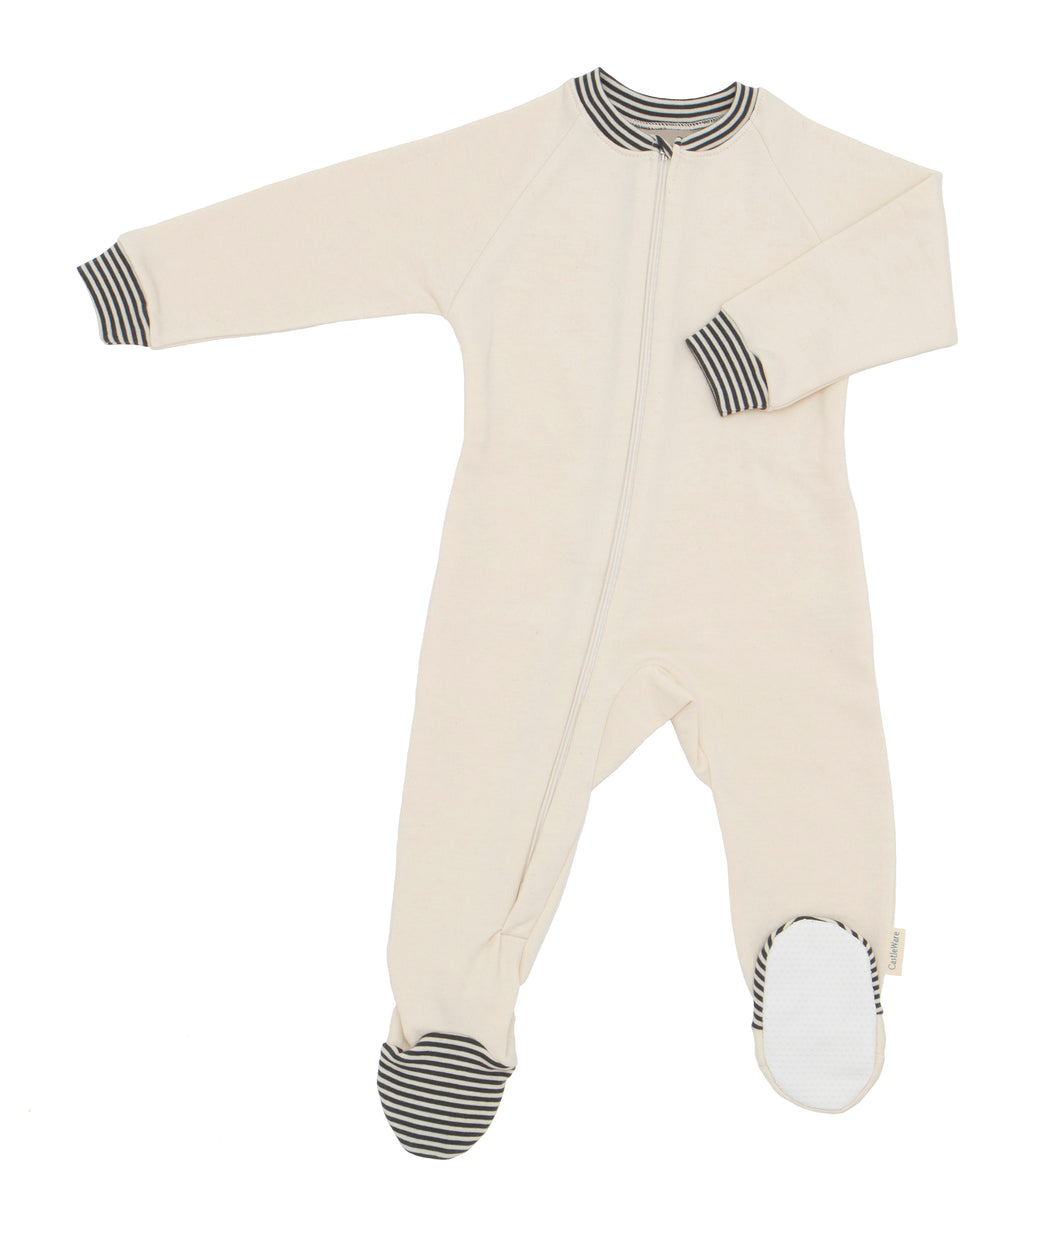 Natural colored Footie with charcoal grey and natural striped trim on wrist cuffs, neckband and toe box. Zipper in natural. CastleWare label in lower side outer side seam of leg.